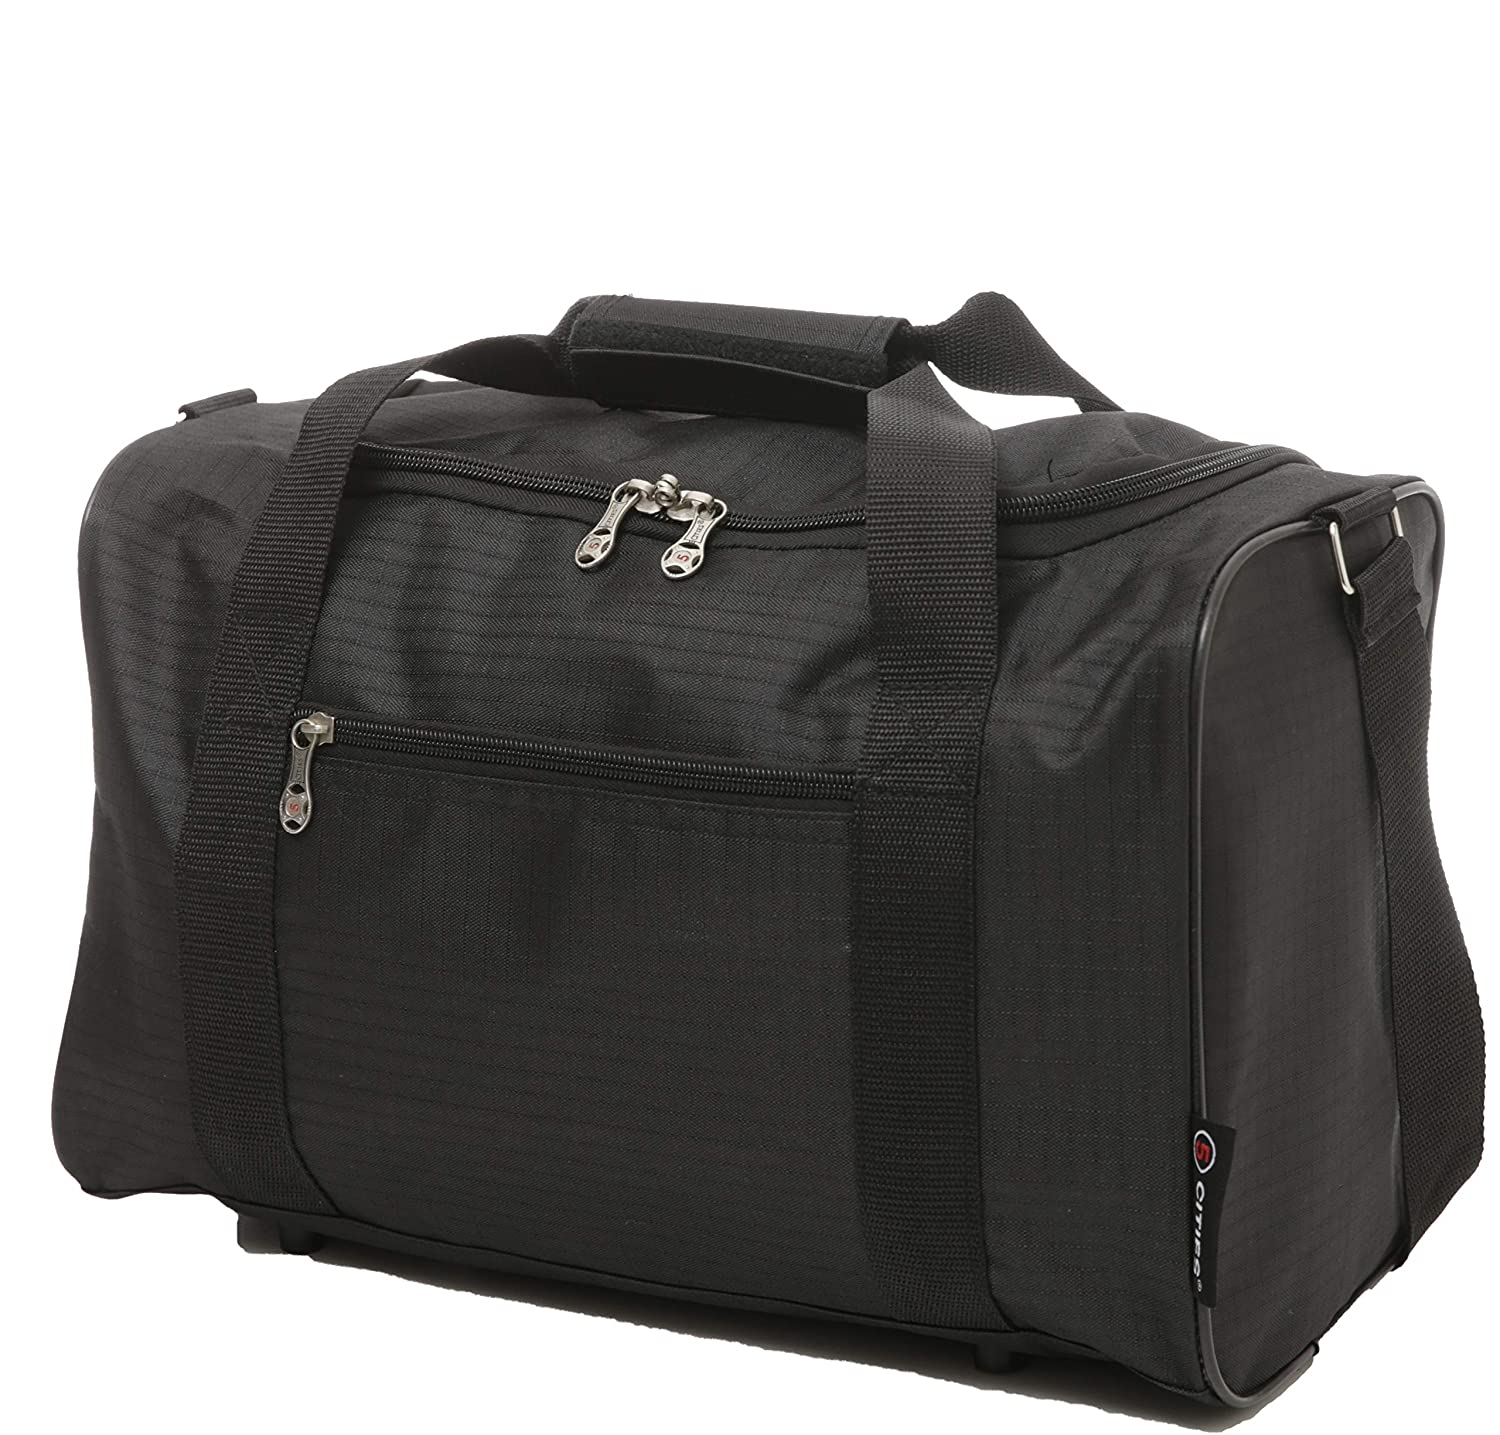 5 Cities New Nov Ryanair 40x20x25 Maximum Sized Cabin Holdall – Take The Max on Board!